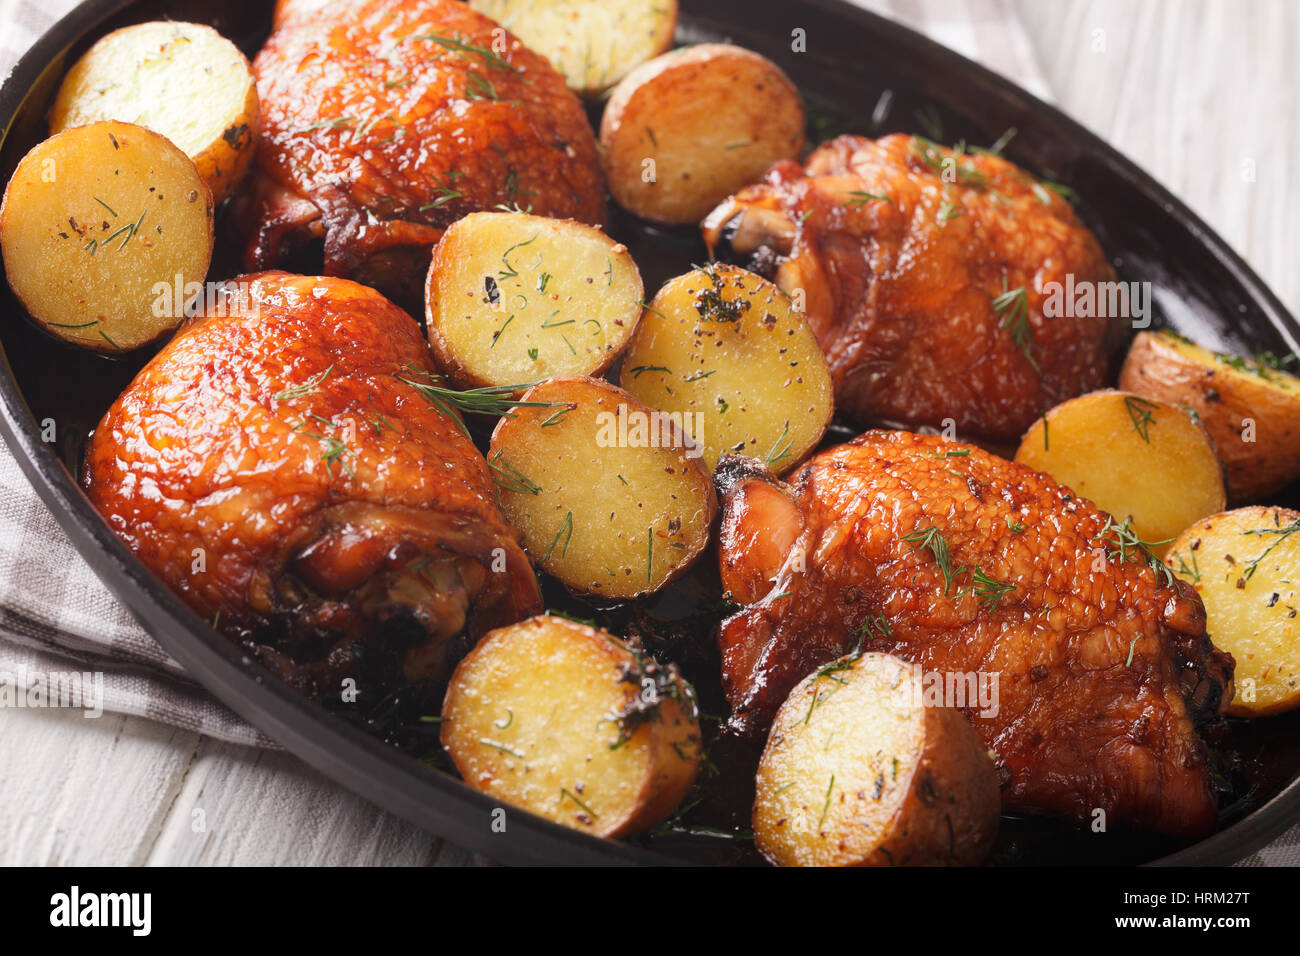 American food maple chicken thighs and baby potatoes close up on a american food maple chicken thighs and baby potatoes close up on a plate horizontal forumfinder Image collections